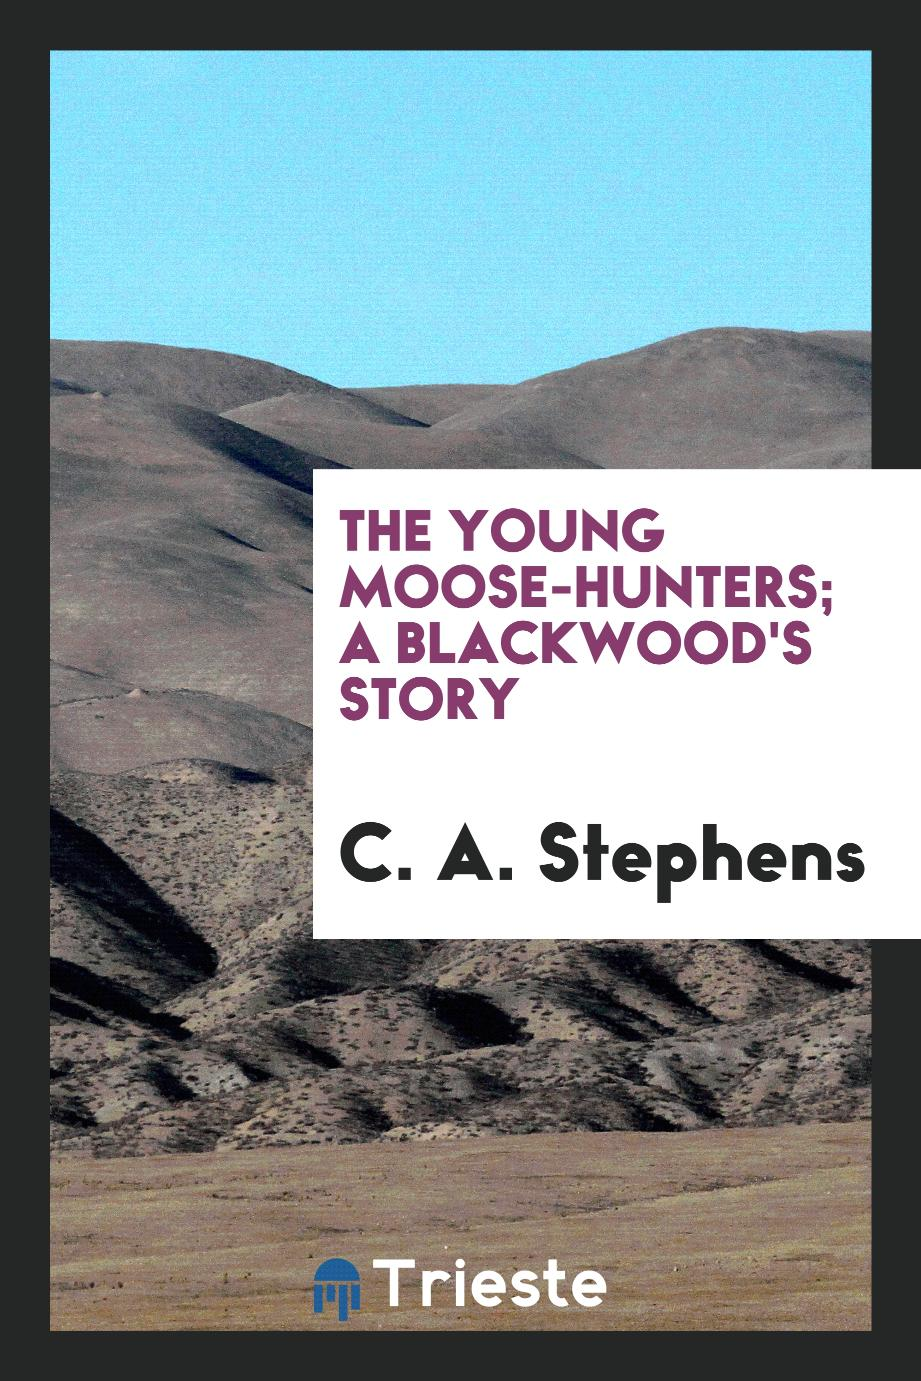 The young moose-hunters; a blackwood's story